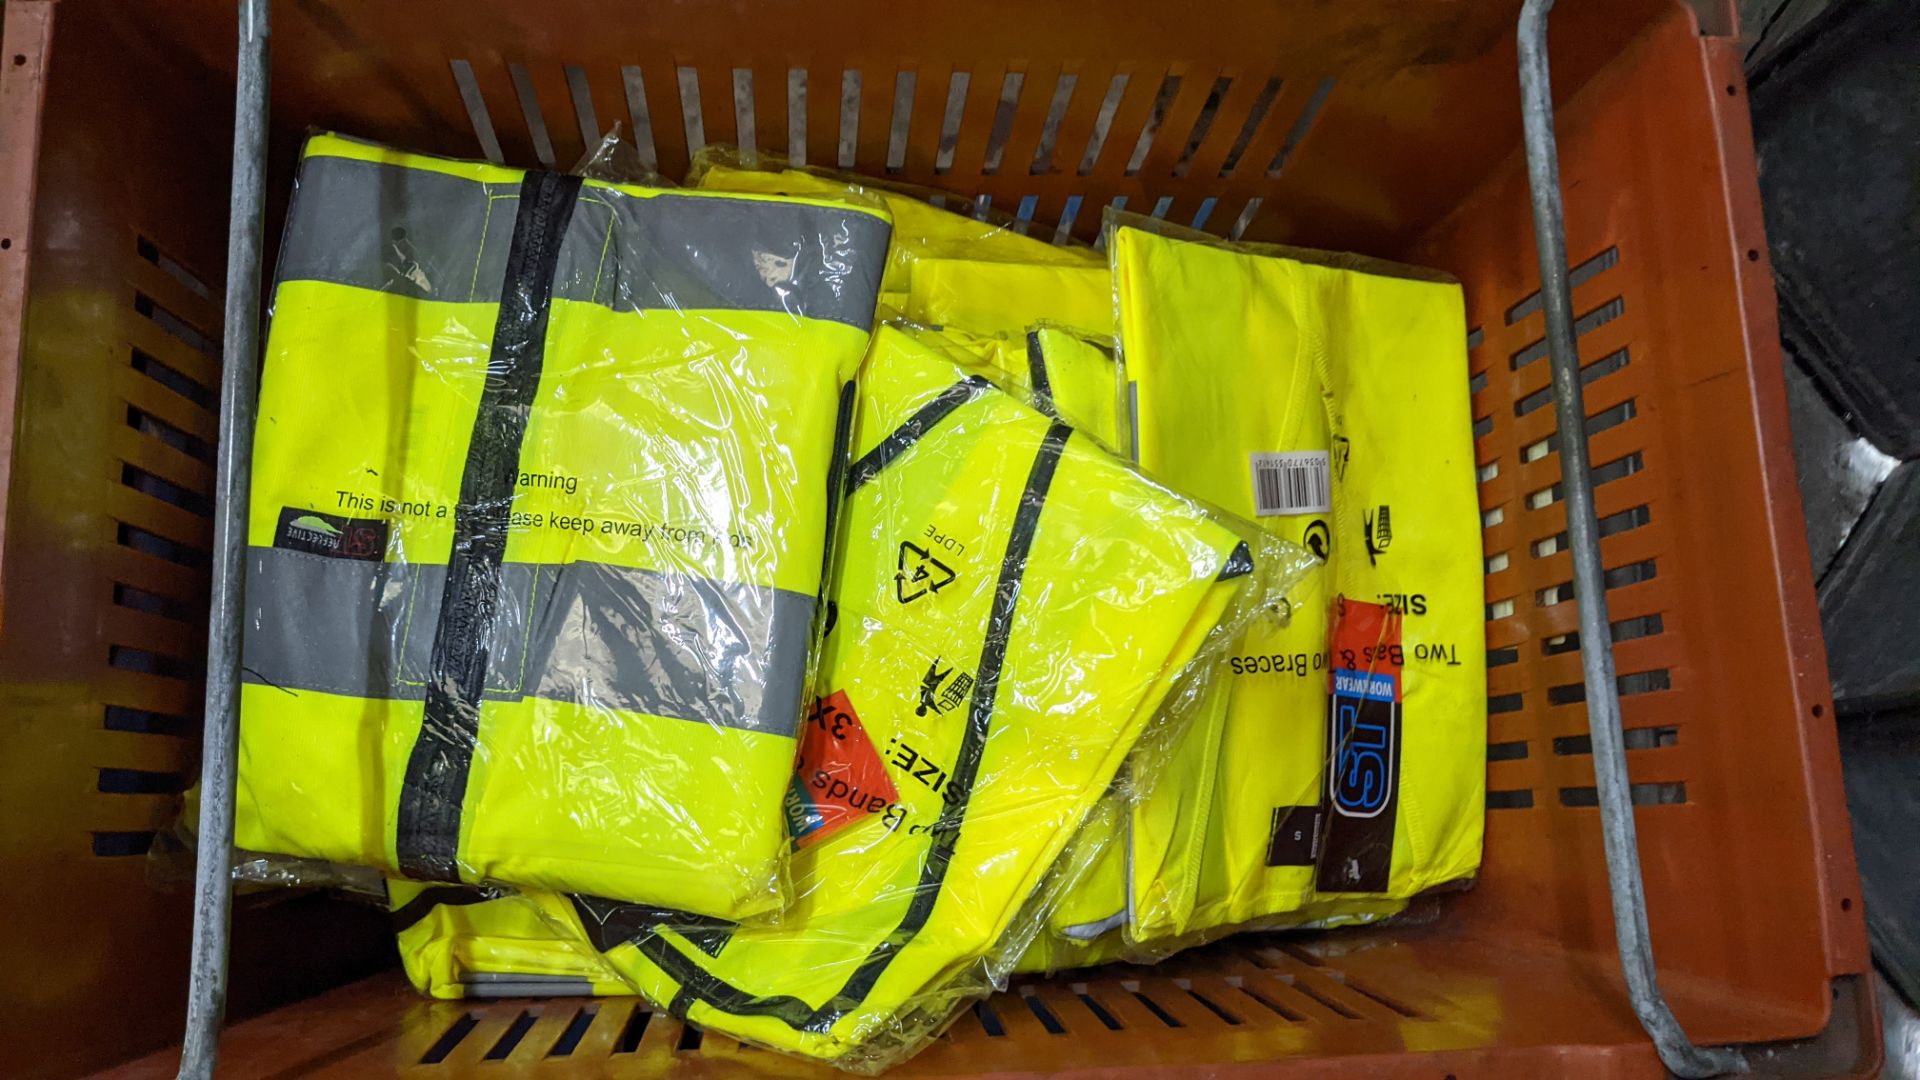 20 off yellow hi-vis vests - Image 4 of 4